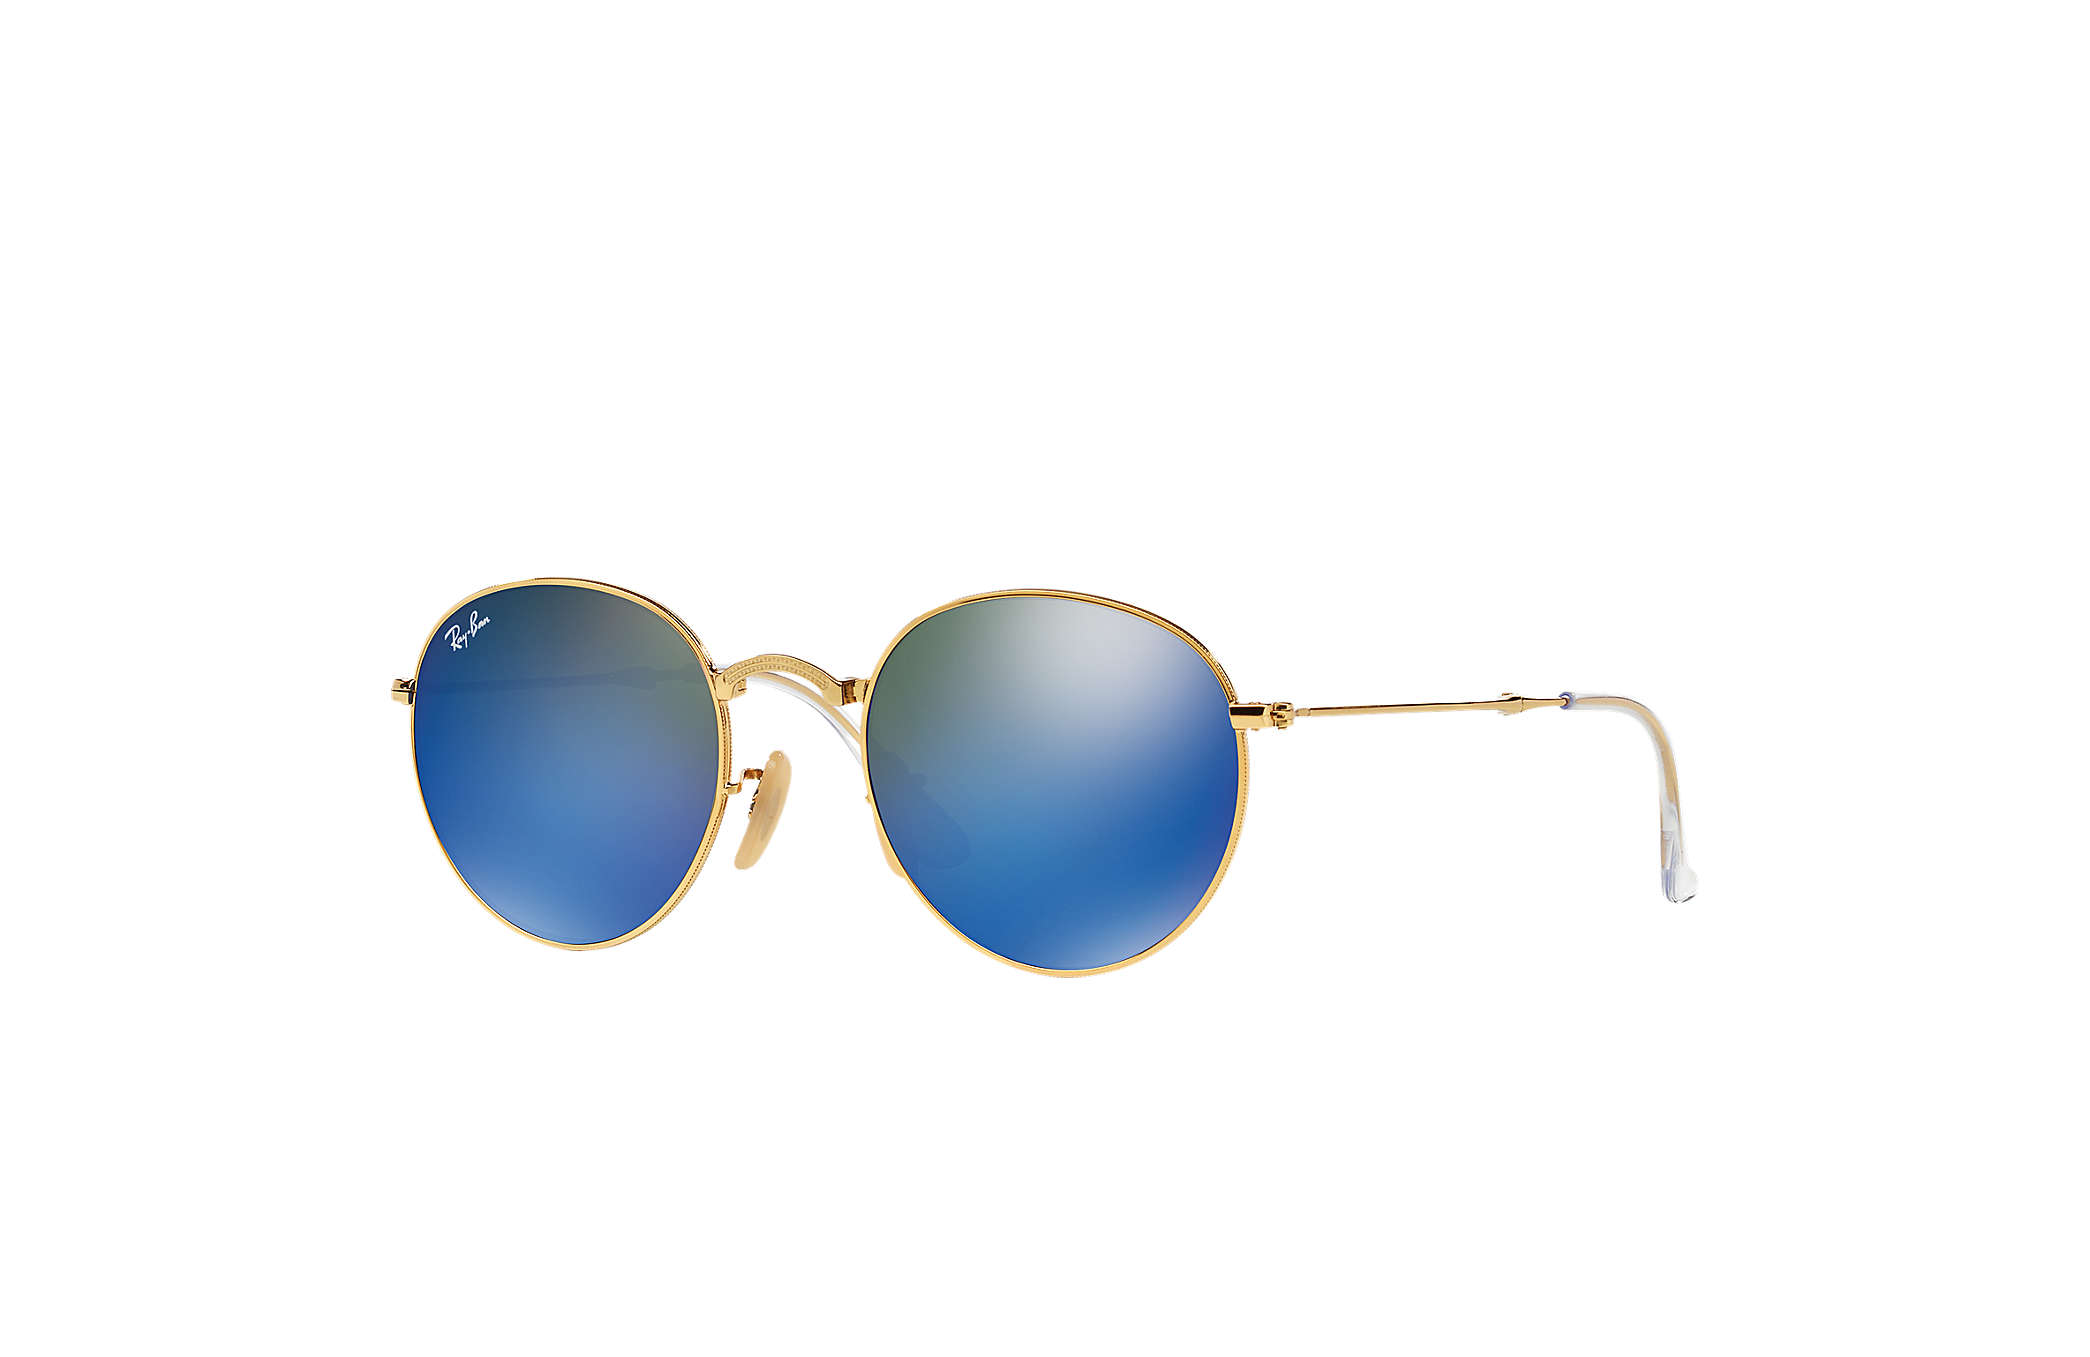 fbad4c9084a Ray-Ban Round Metal Folding RB3532 Gold - Metal - Blue Lenses ...